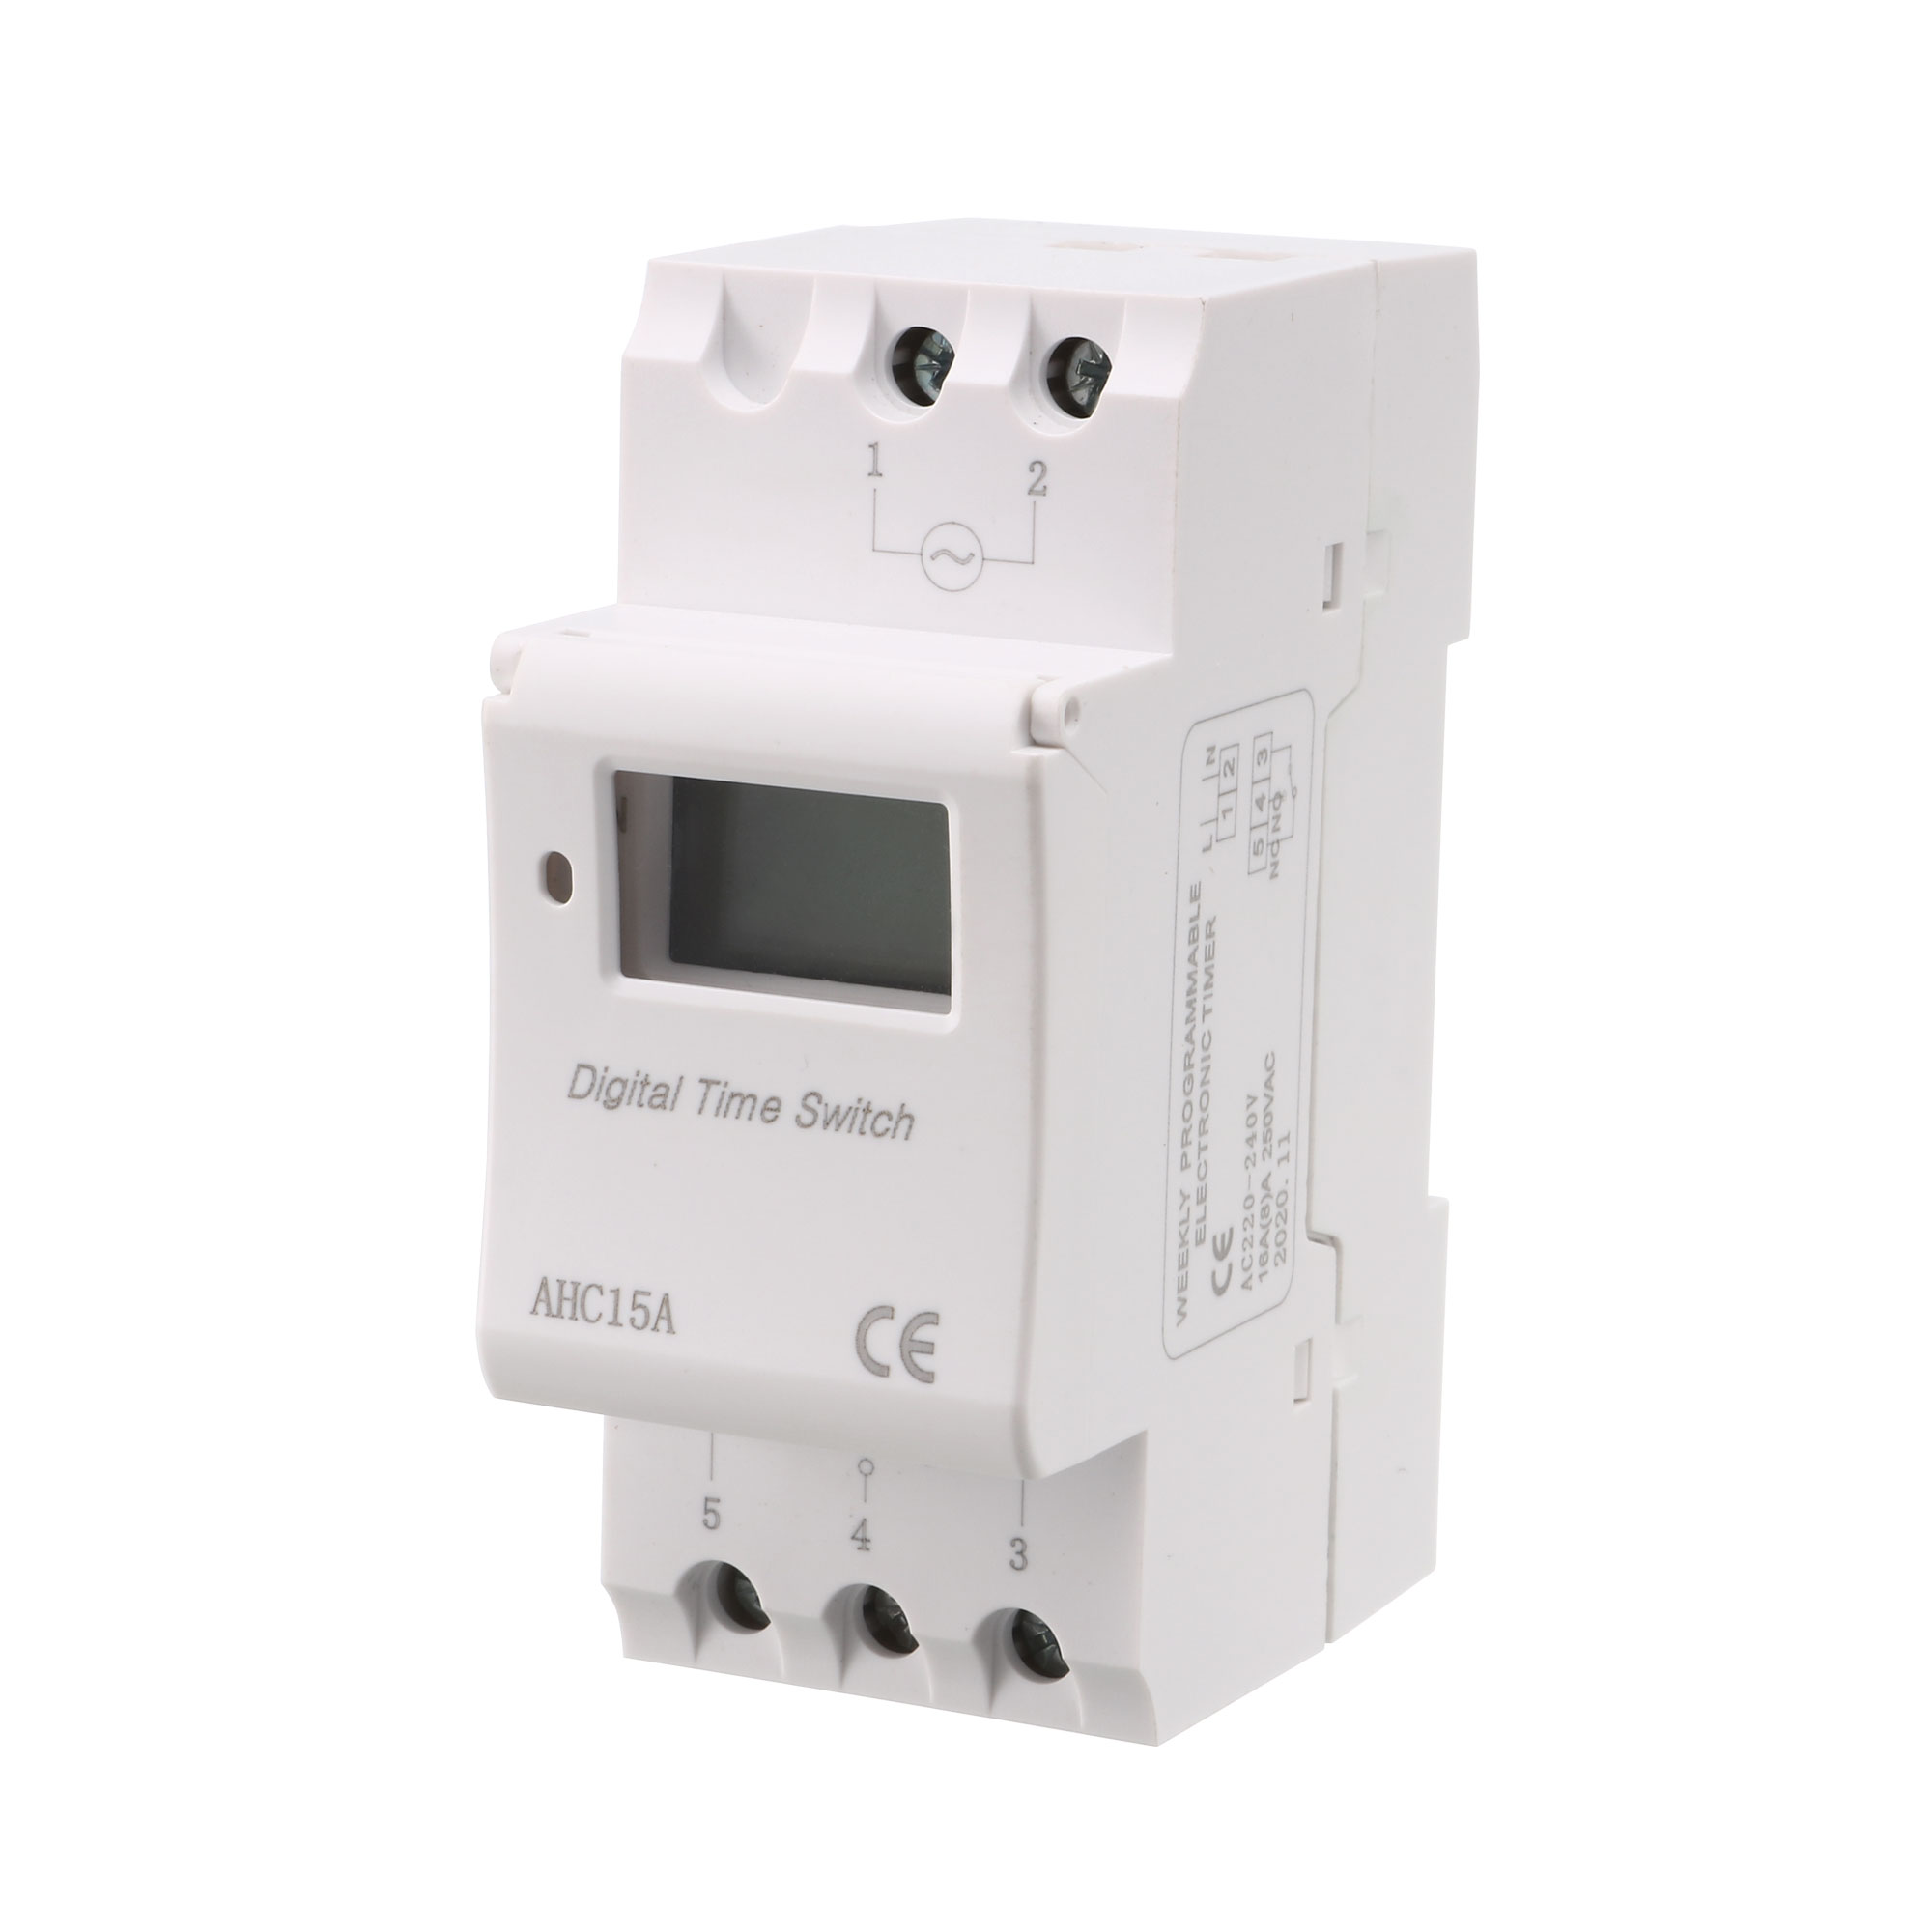 AC220V-240V DIN Rail Mount Digital Weekly Programmable Electronic Timer AHC15A